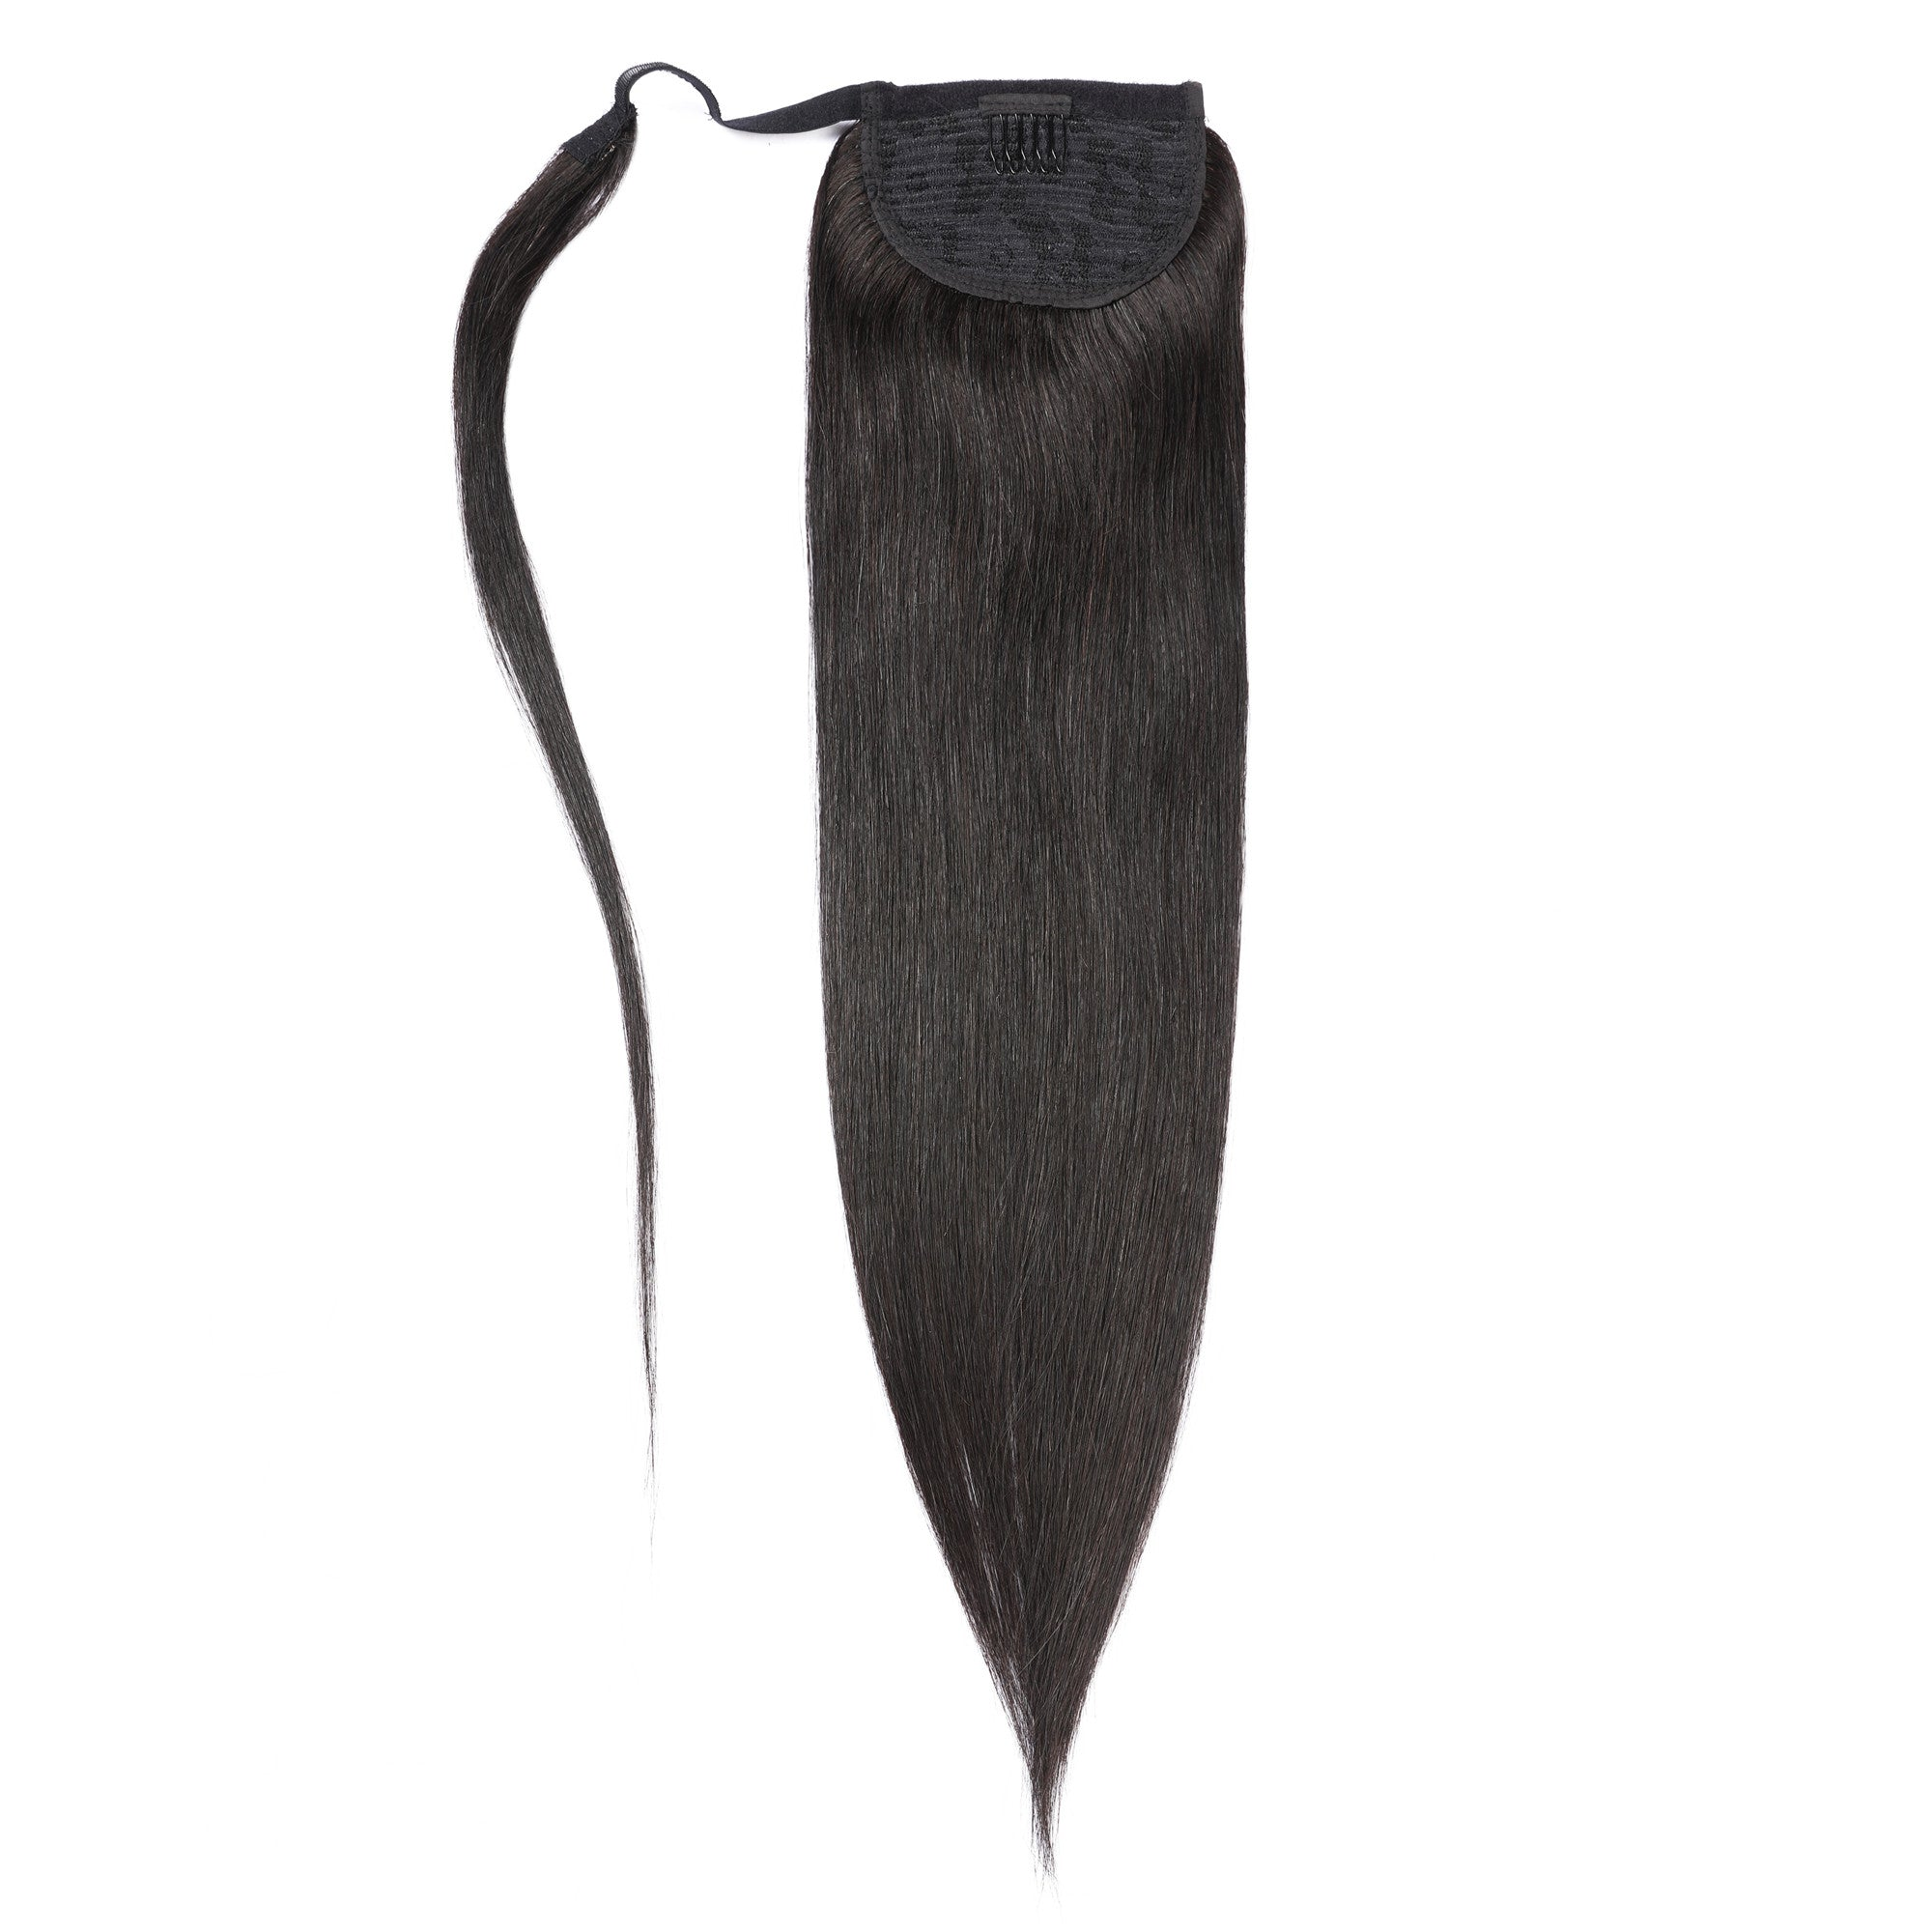 Straight Ponytail Human Hair Clip Extensions Wrap Around